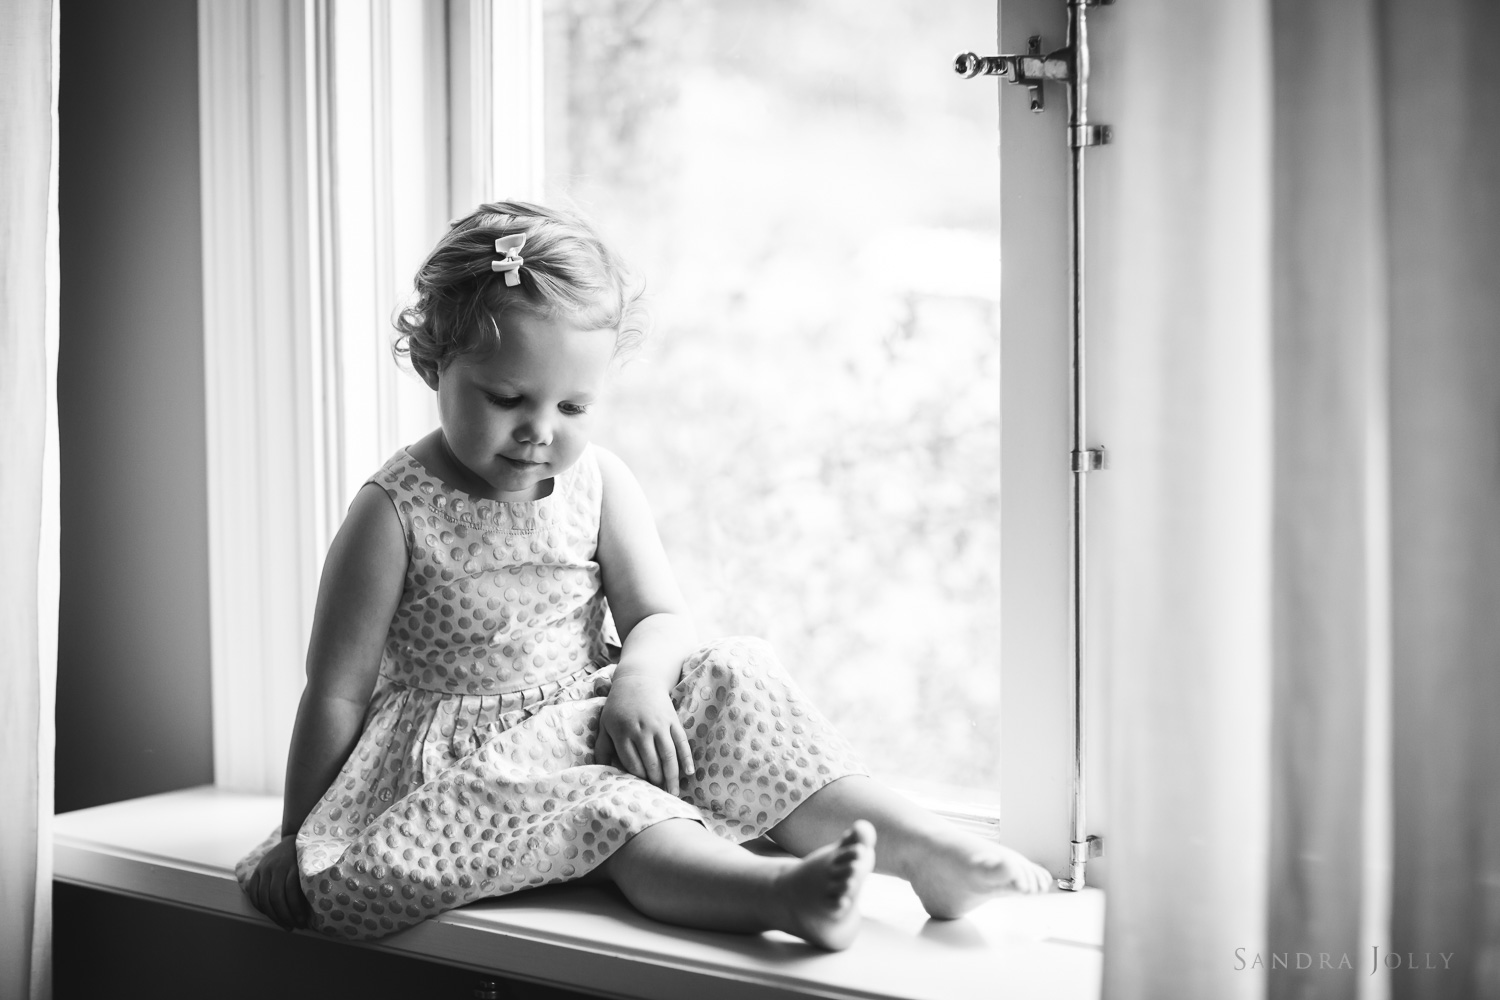 black-and-white-photo-of-girl-in-window-by-barnfotograf-stockholm-sandra-jolly.jpg